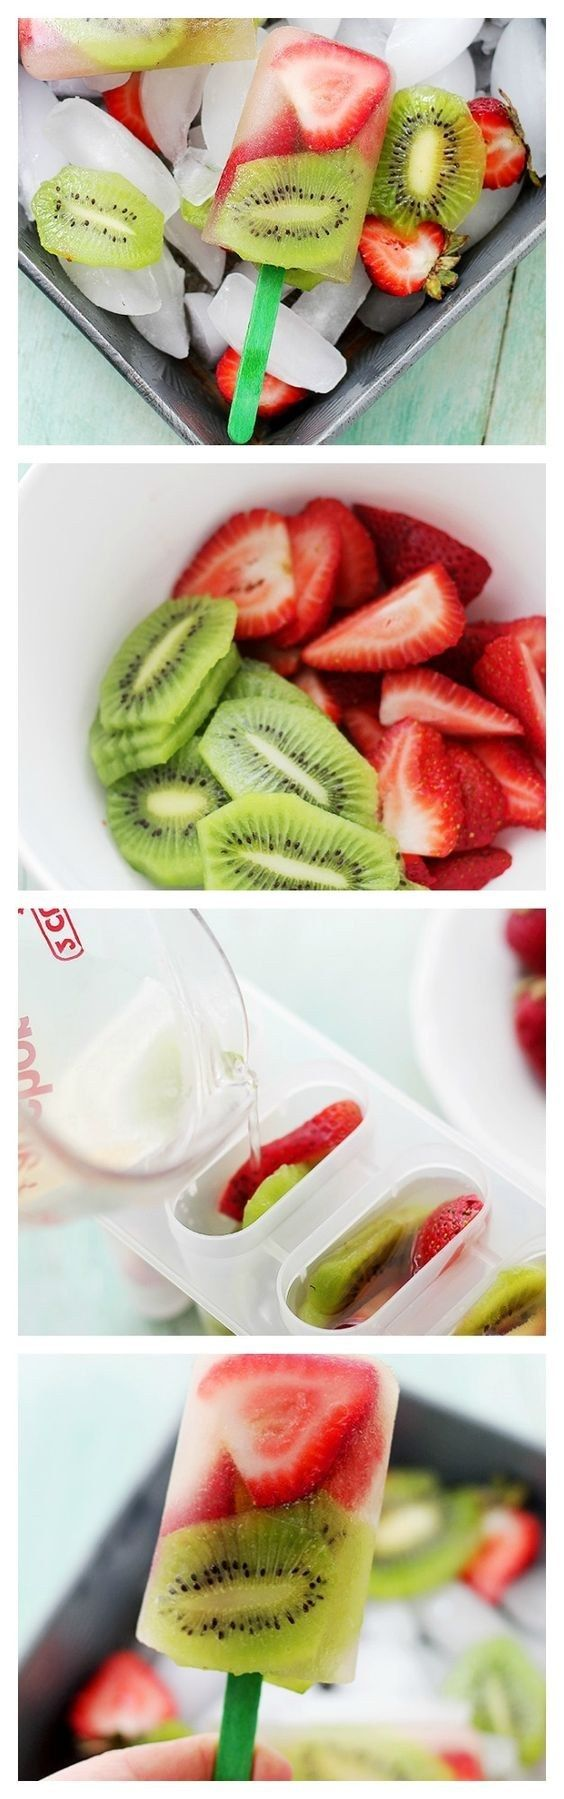 Strawberry Kiwi Pops | 15 Healthier Fruit Pops To Eat Instead Of Ice Cream